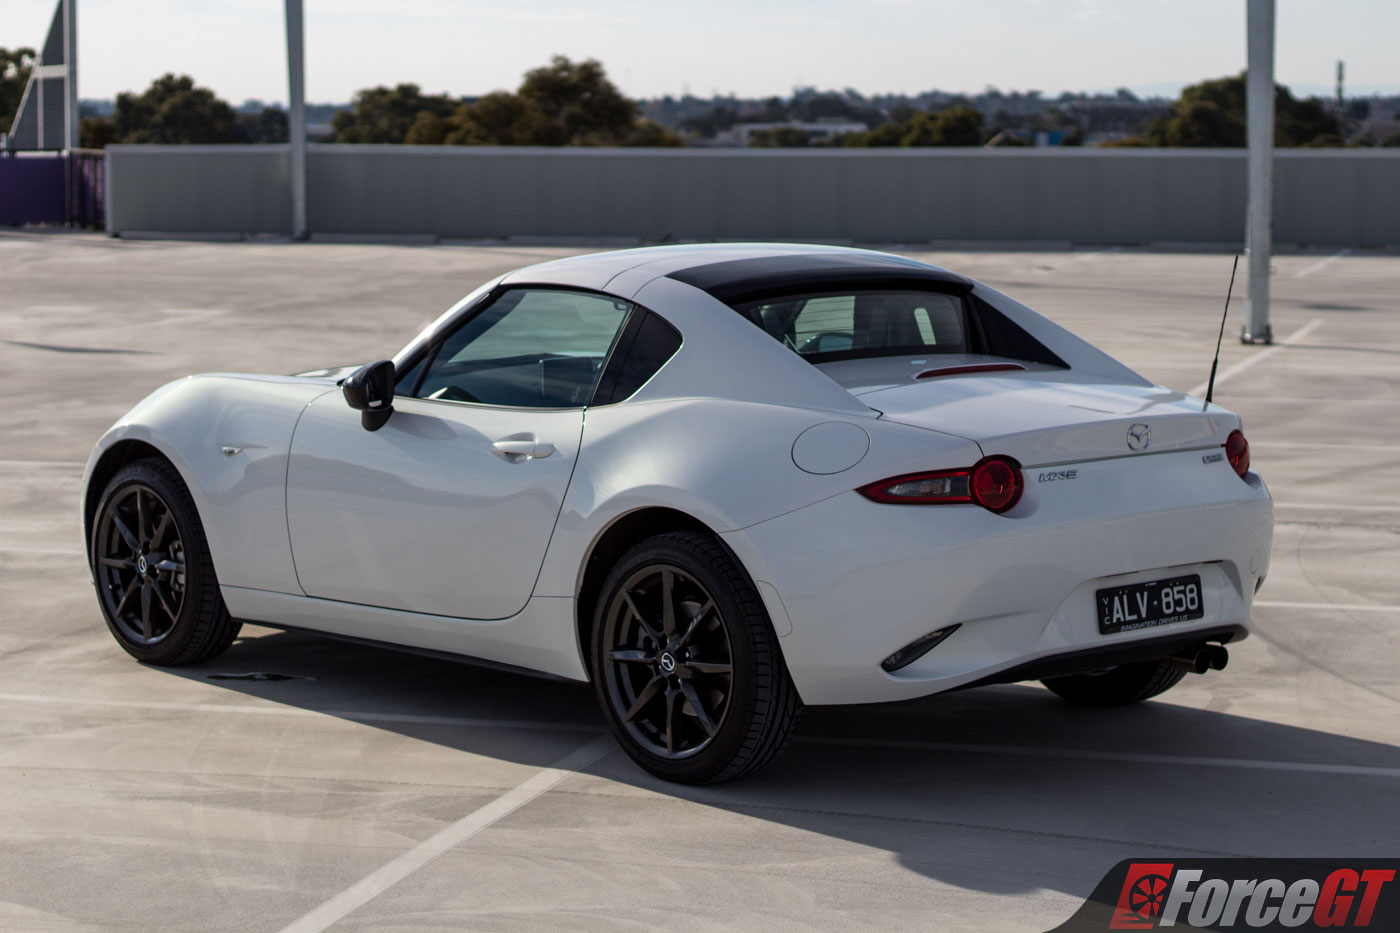 Toyota Safety Connect >> 2017 Mazda MX-5 RF Review - ForceGT.com